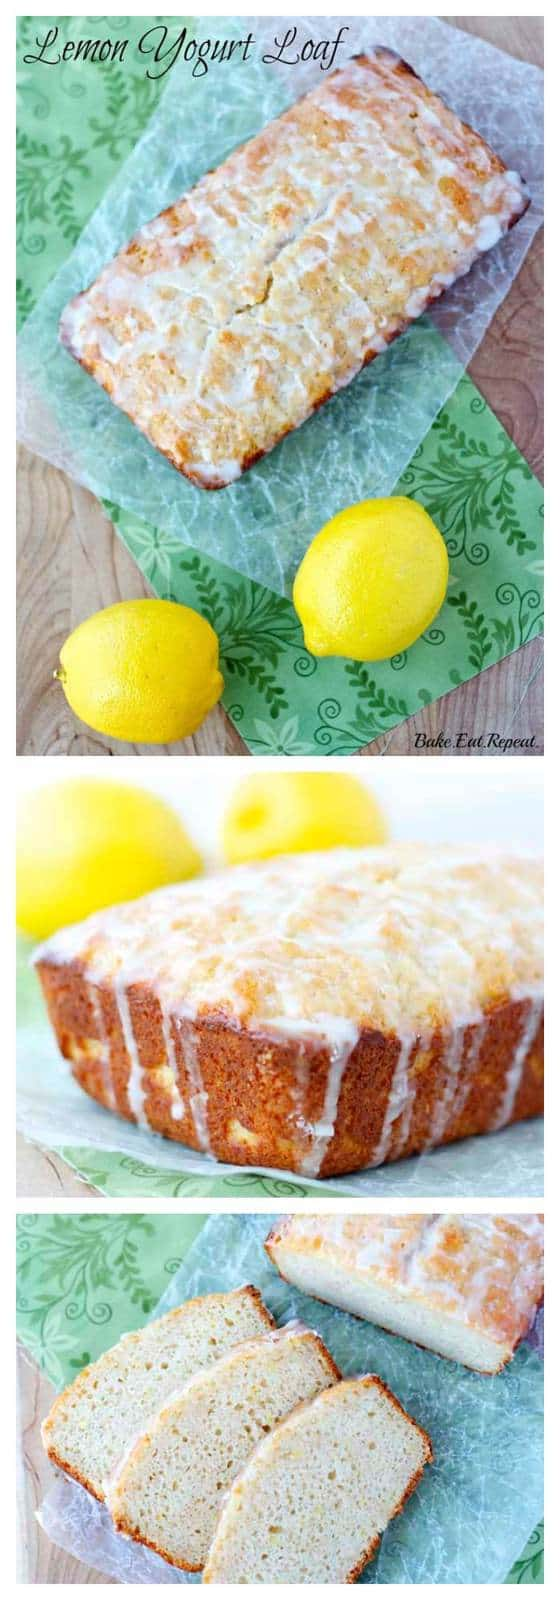 Lemon Yogurt Bread - Healthy, whole wheat lemon yogurt loaf with a delectable lemon glaze. Quick, easy and healthy for the perfect breakfast or snack! | cupcakesandkalechips.com